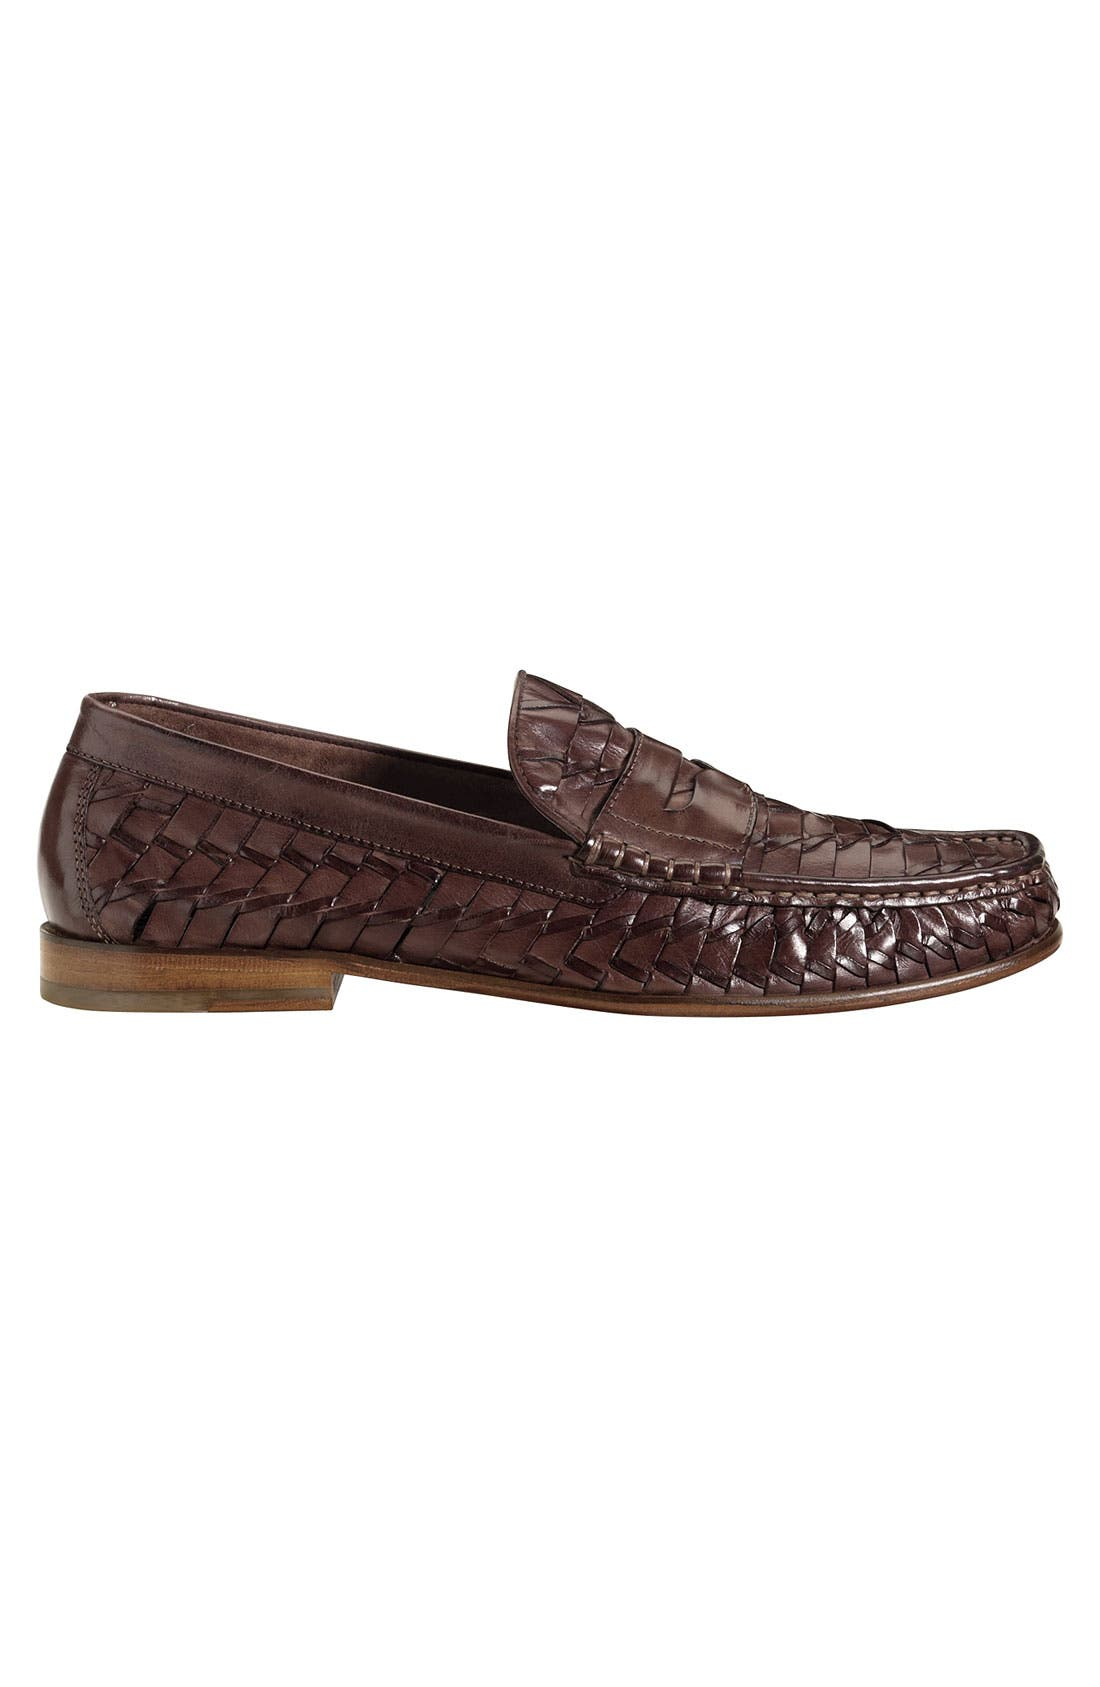 Alternate Image 3  - Cole Haan 'Air Tremont' Penny Loafer